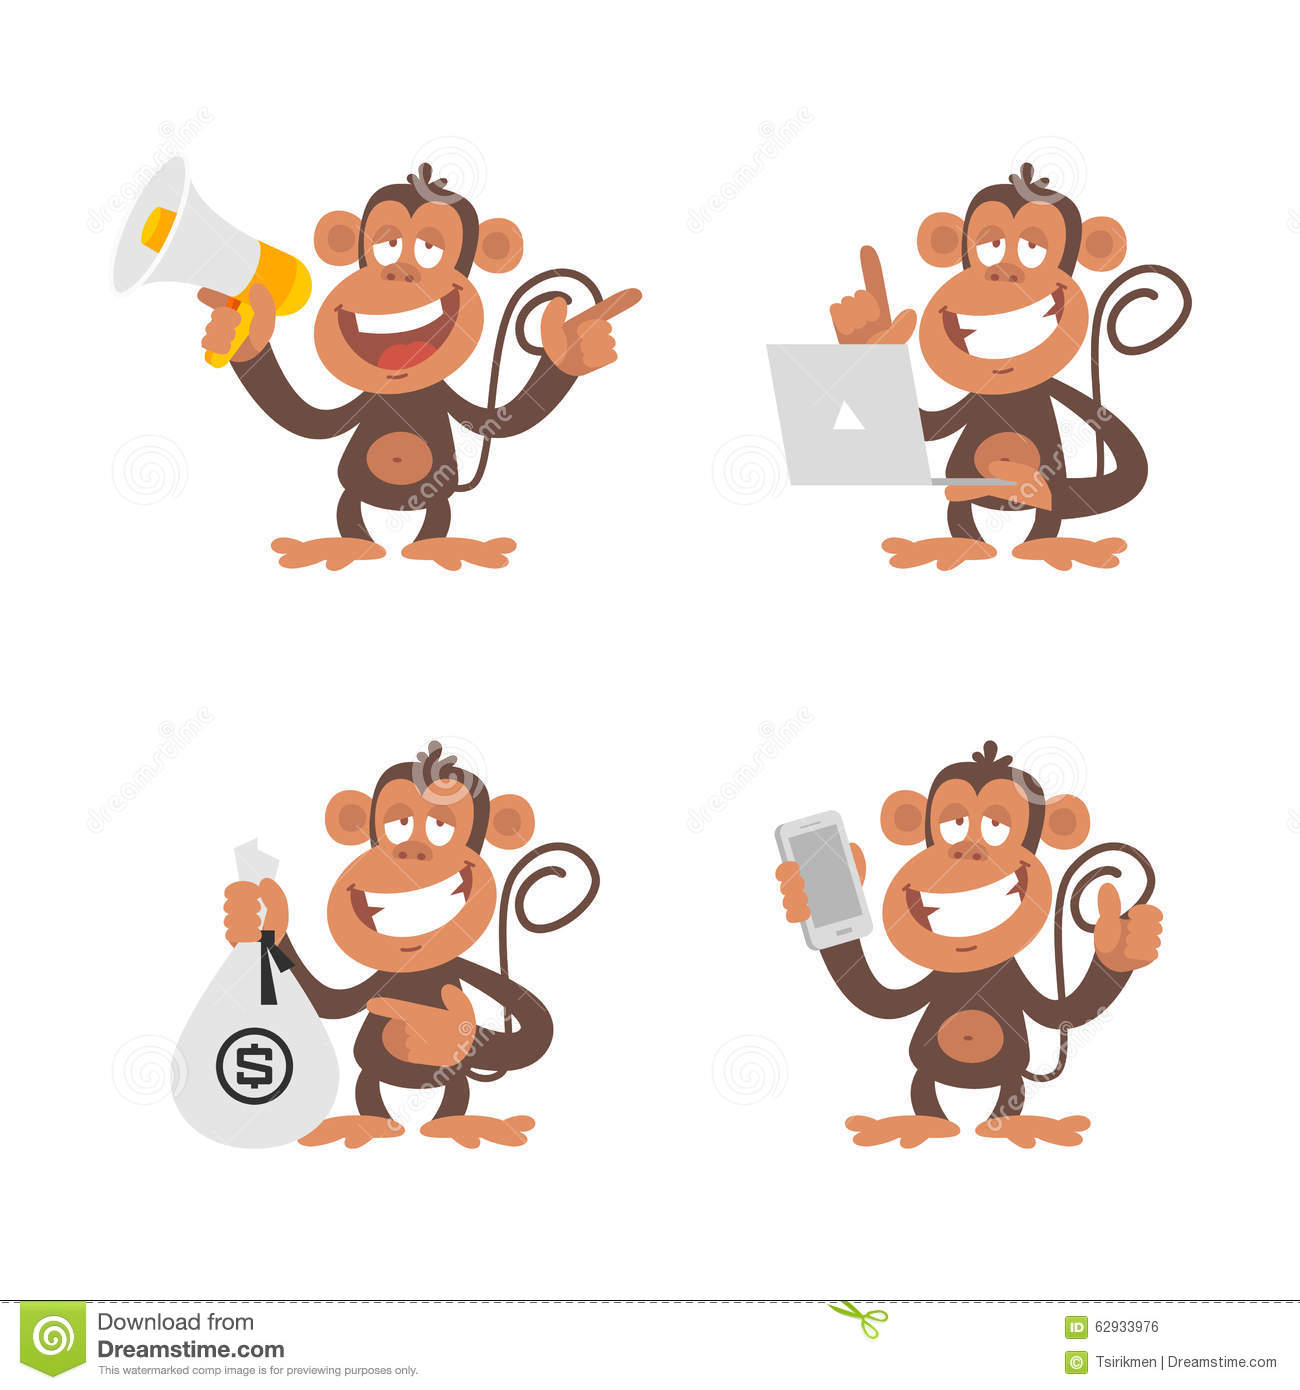 Amazon.com: Monkey Money 2 Slots: Appstore for Android